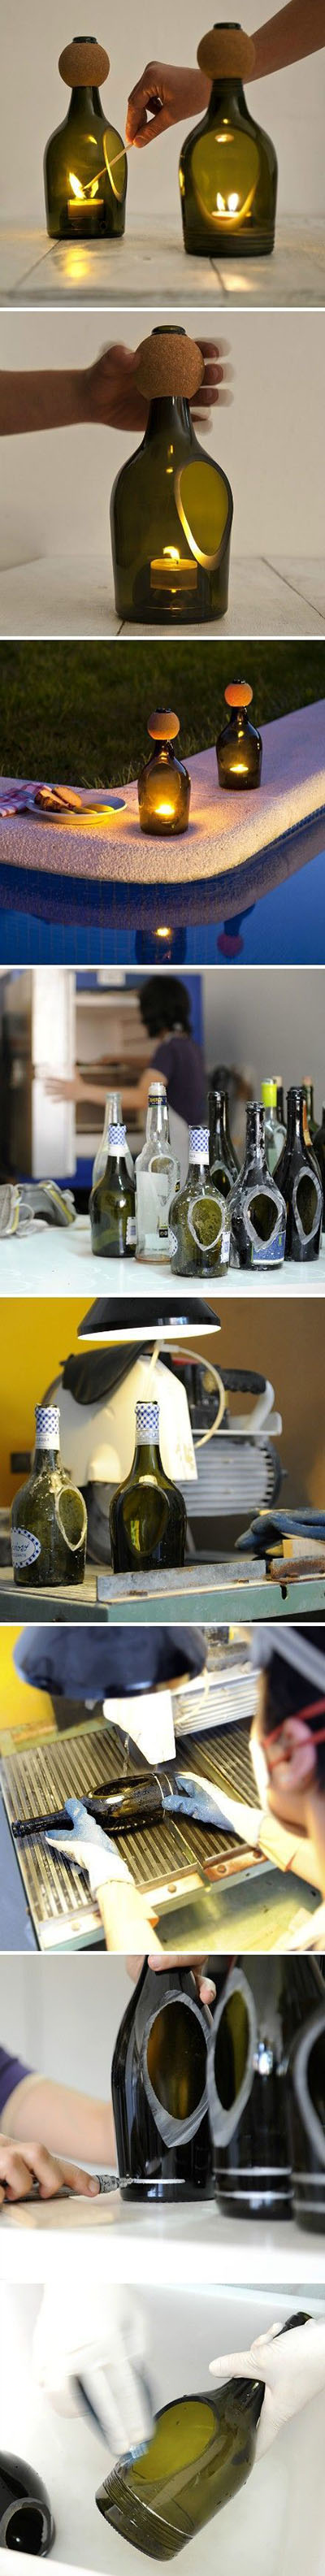 8  DIY Wine Bottles Crafts And Ideas063e